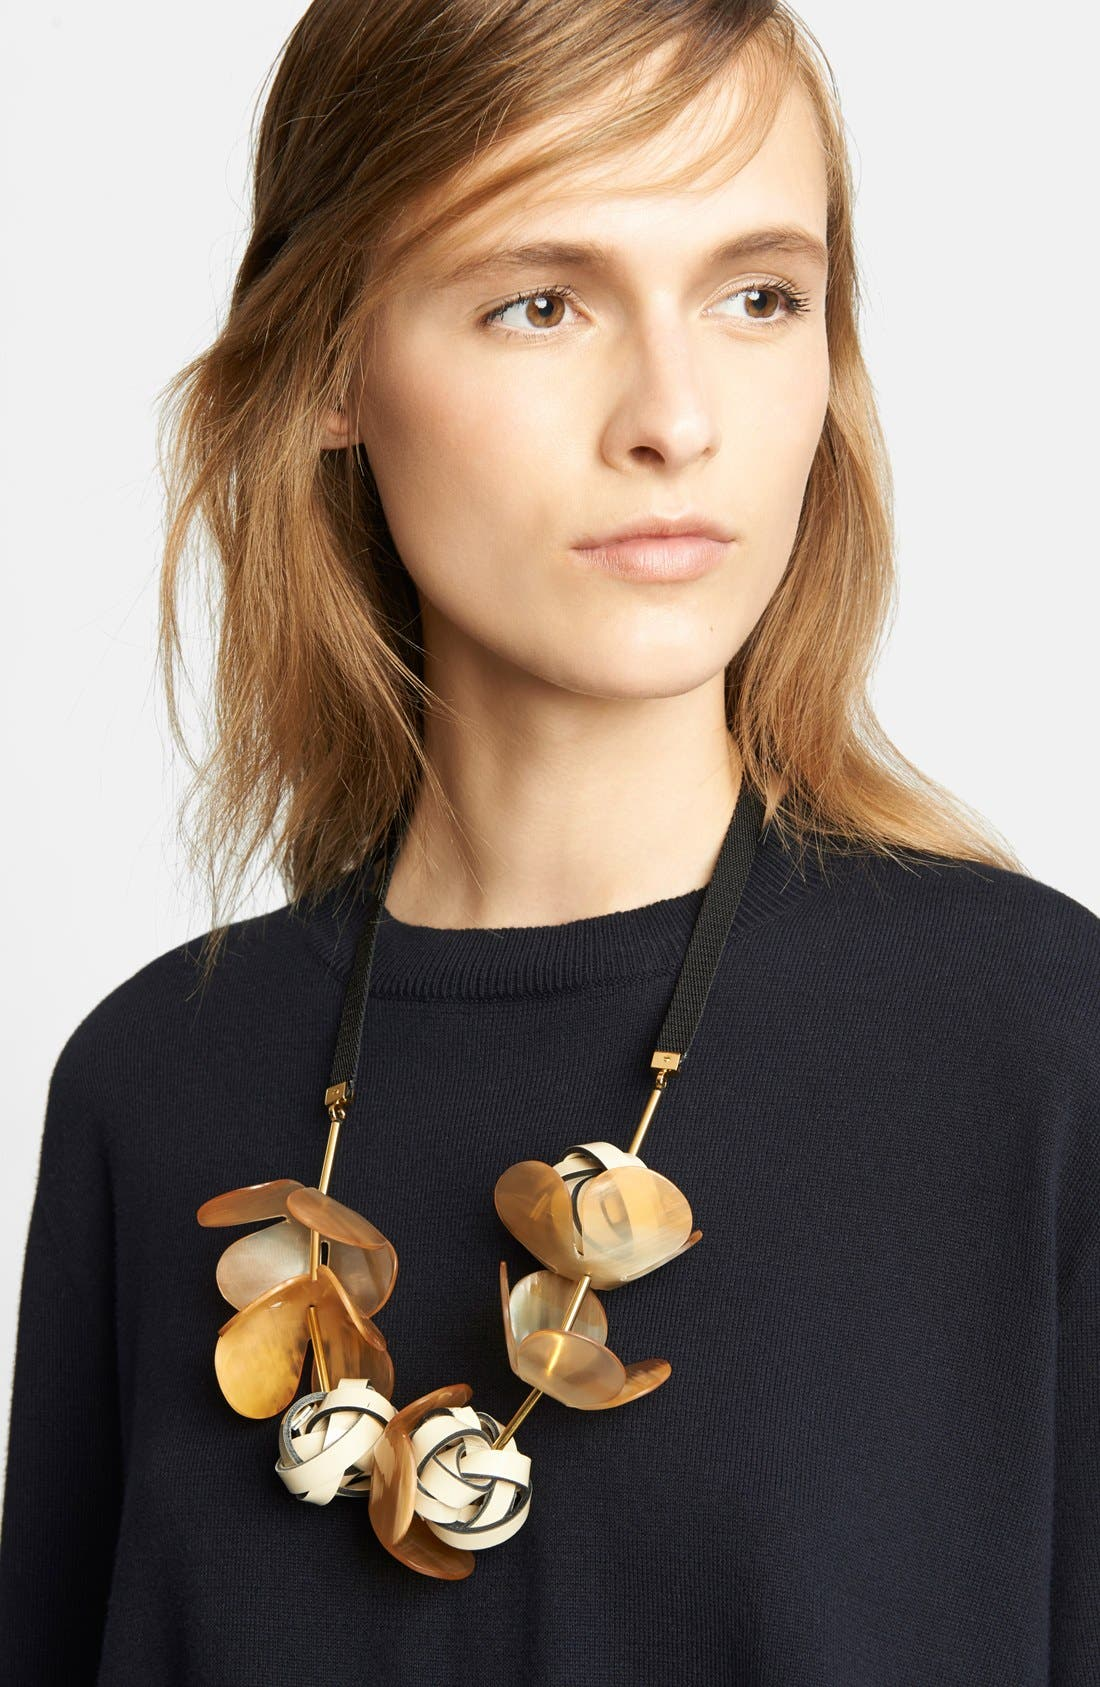 Alternate Image 1 Selected - Marni Floral Necklace on Ribbon